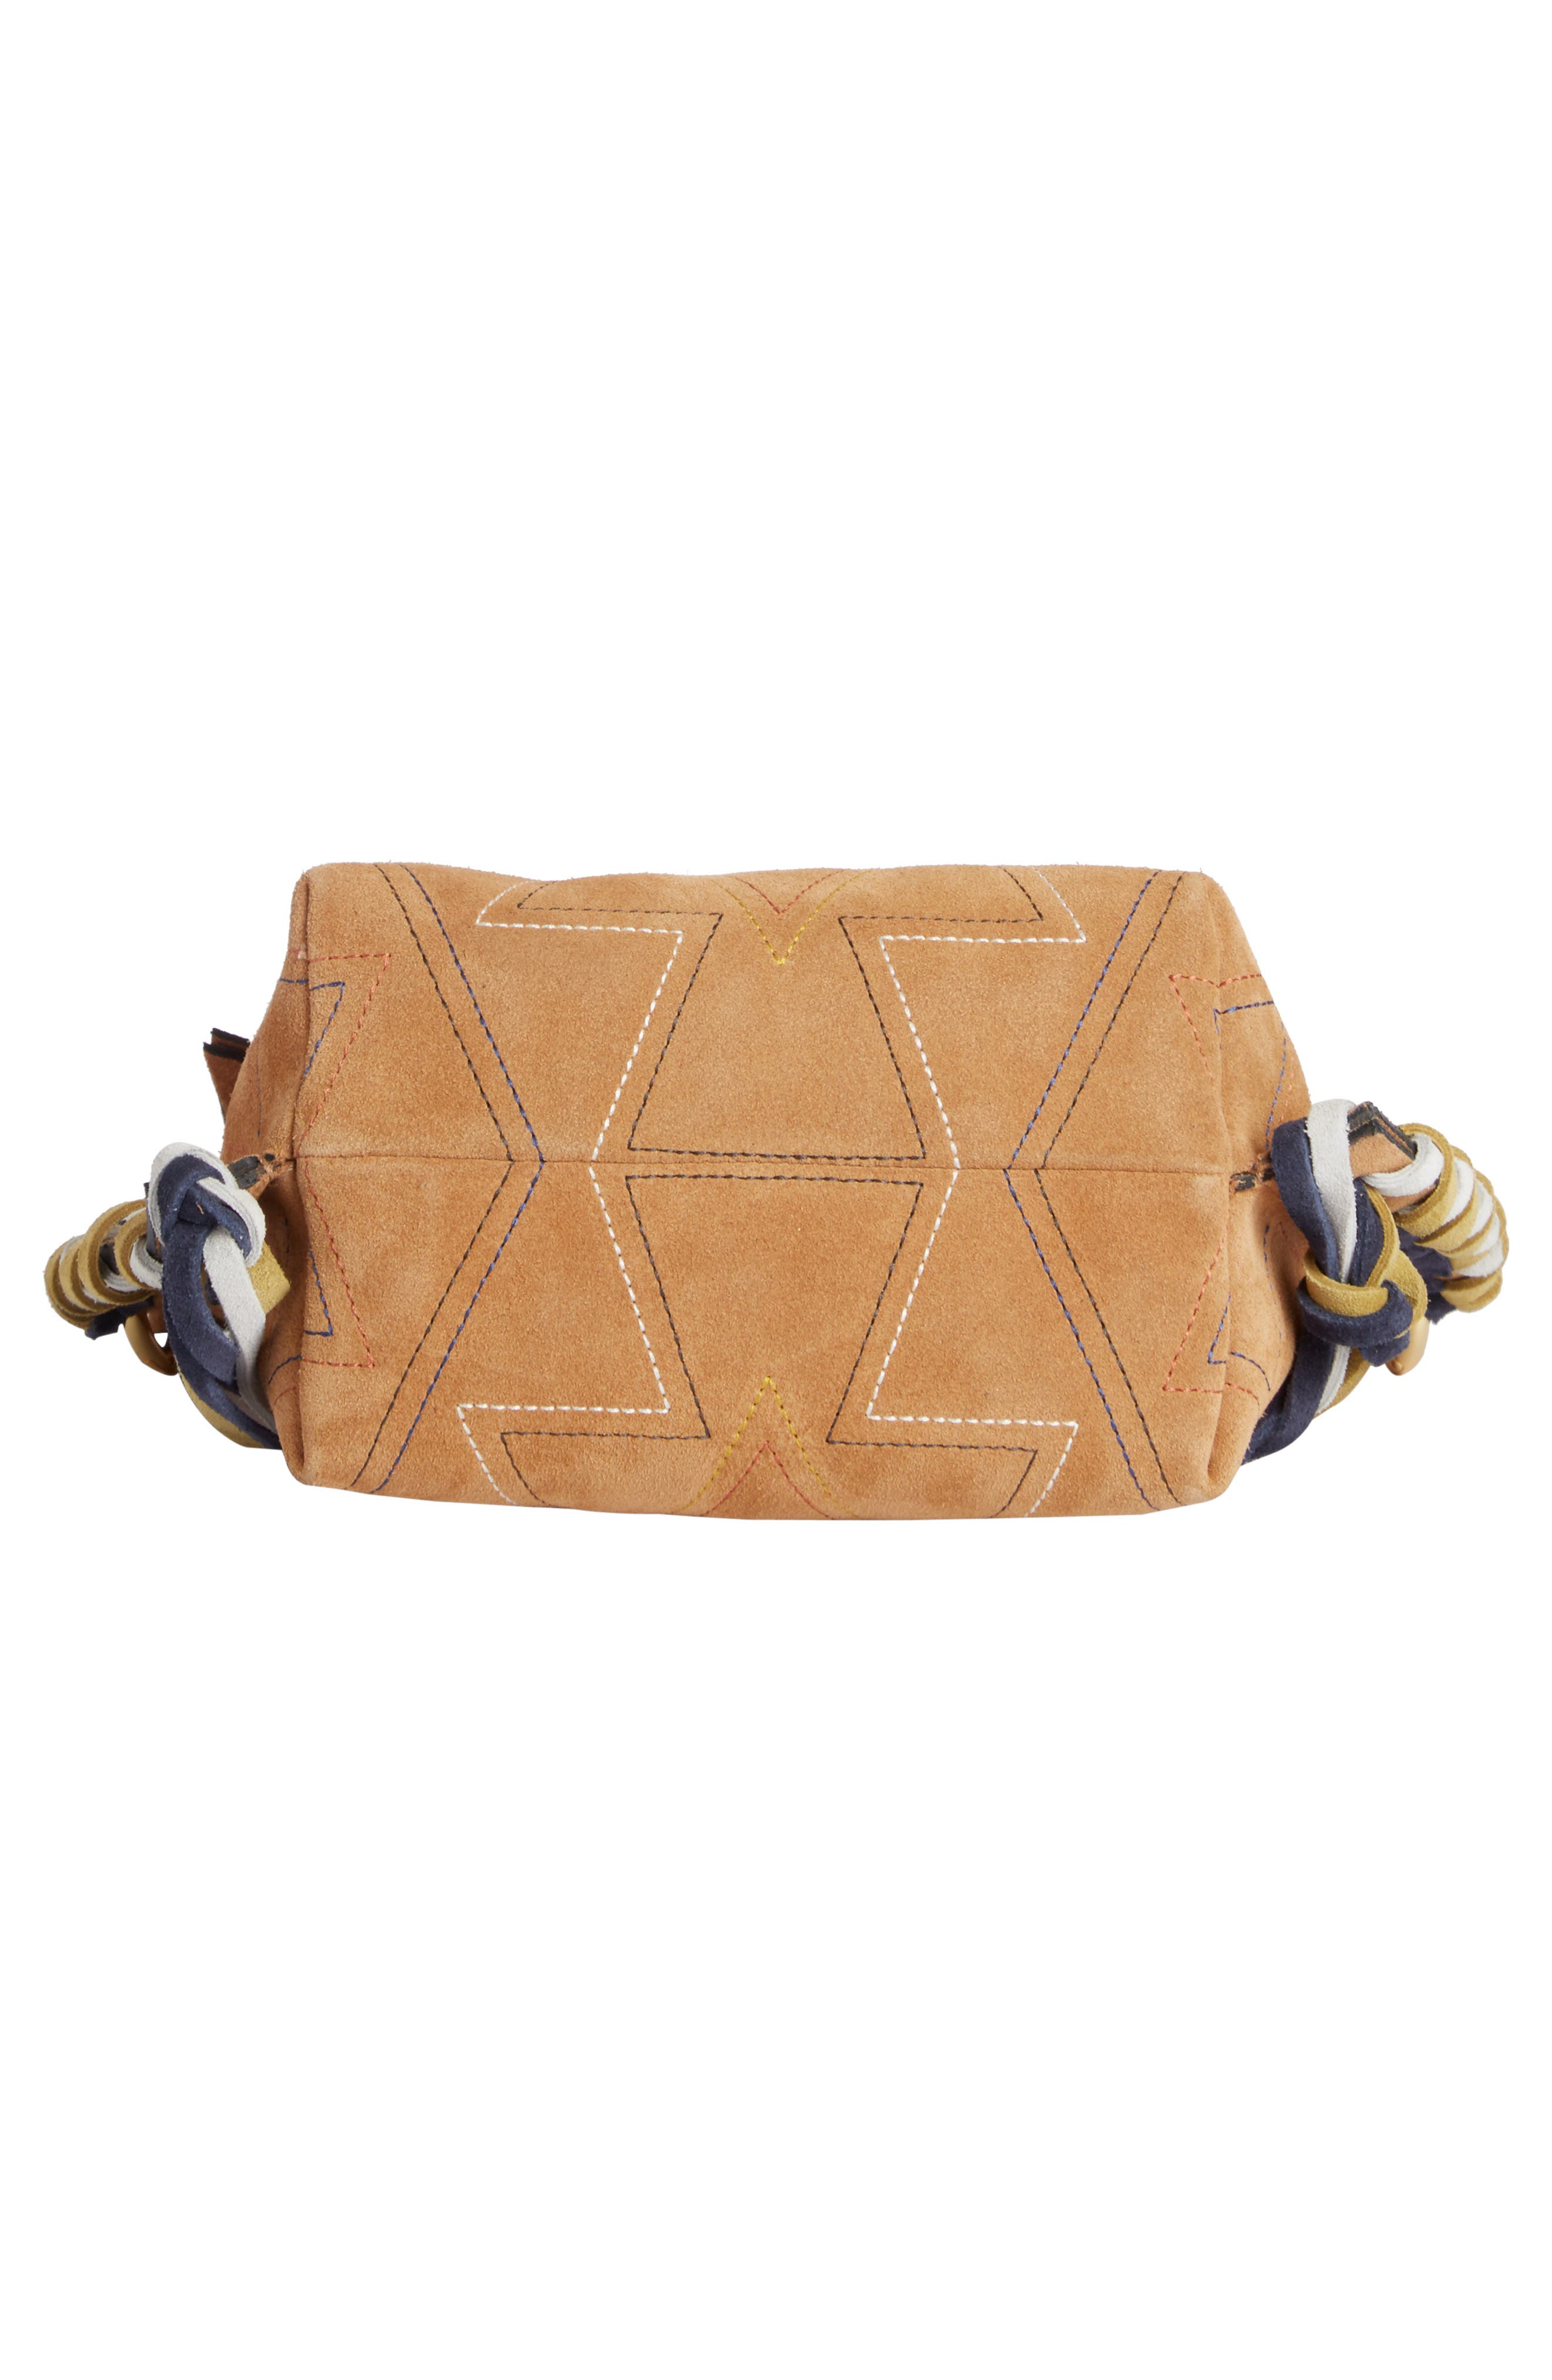 Fangoh Stitched Suede Crossbody Bag,                             Alternate thumbnail 4, color,                             Terracotta